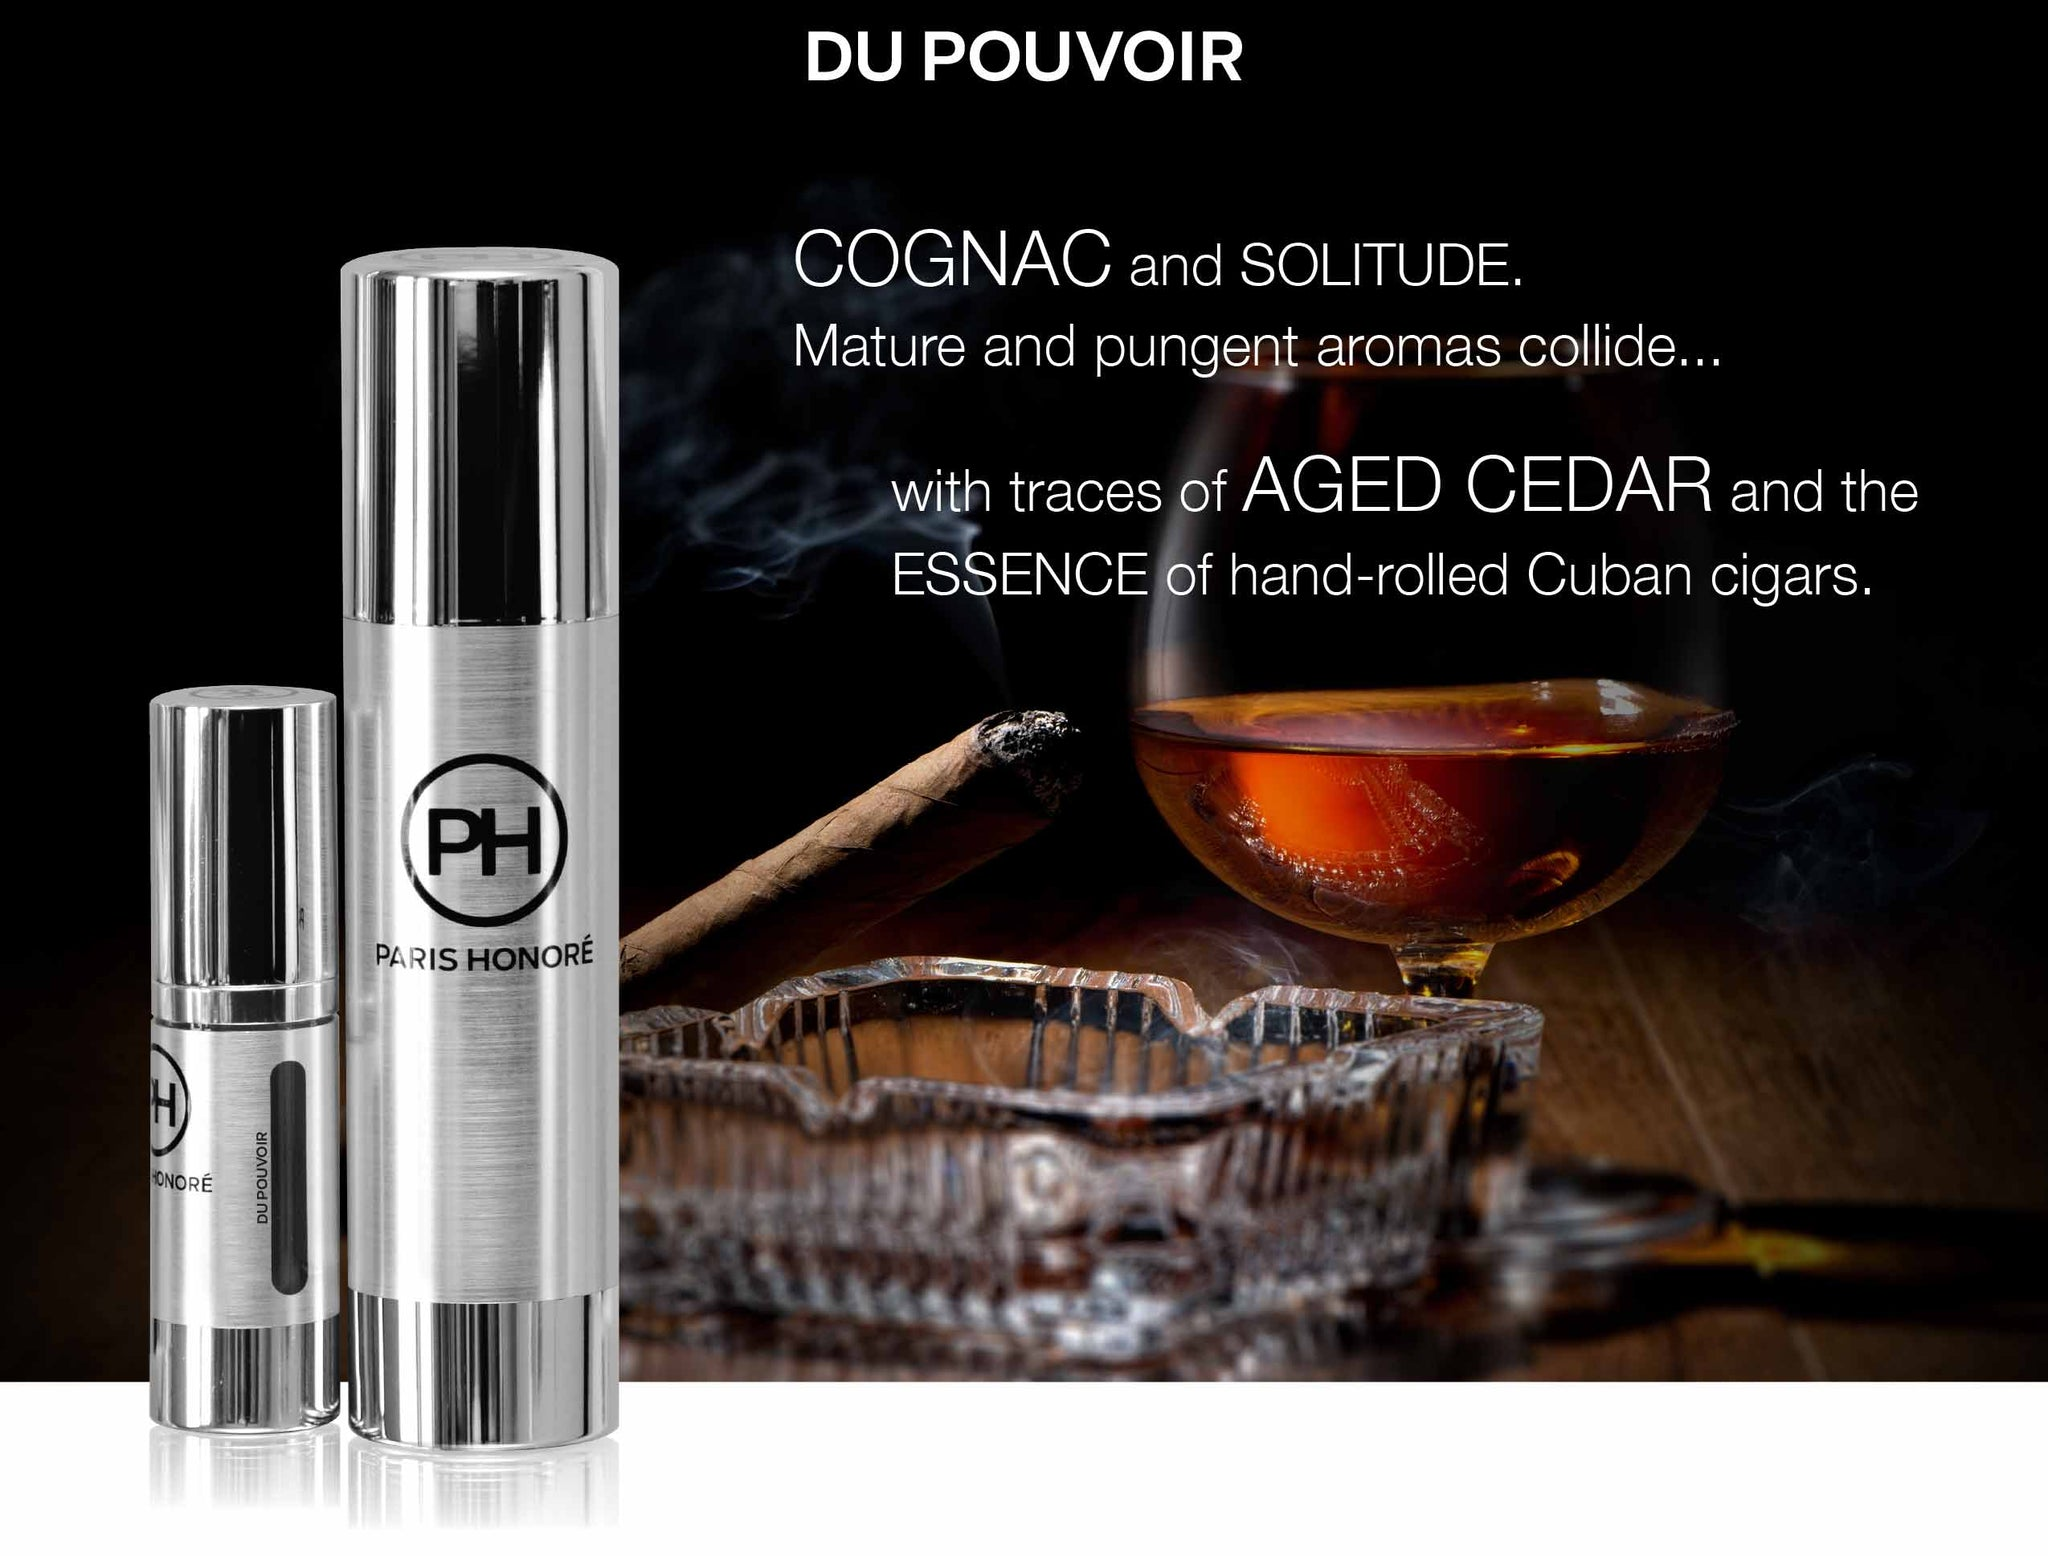 DU POUVOIR.  Cognac and solitude. Mature and pungent aromas collide with traces of aged cedar and the essence of hand-rolled Cuban cigars - PARIS HONORÉ luxury organic skincare